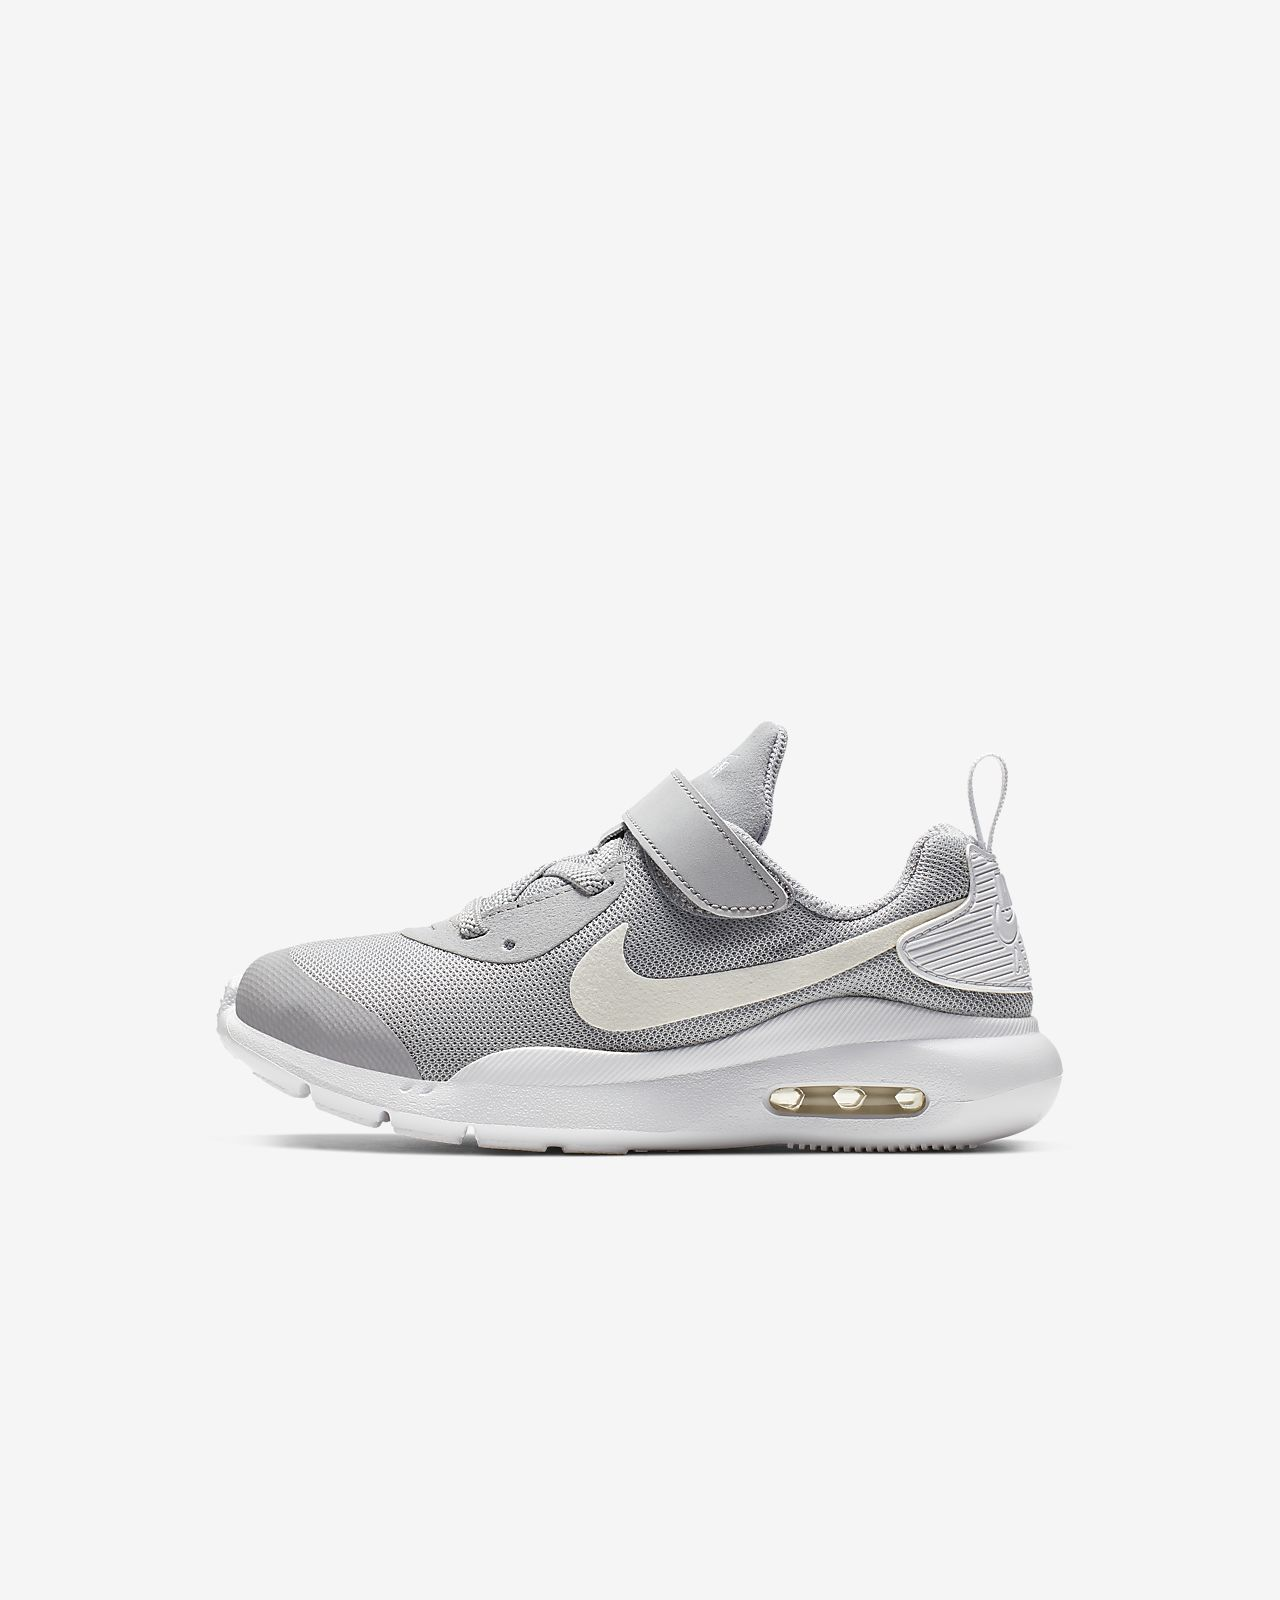 Nike Air Max Oketo Little Kids' Shoe